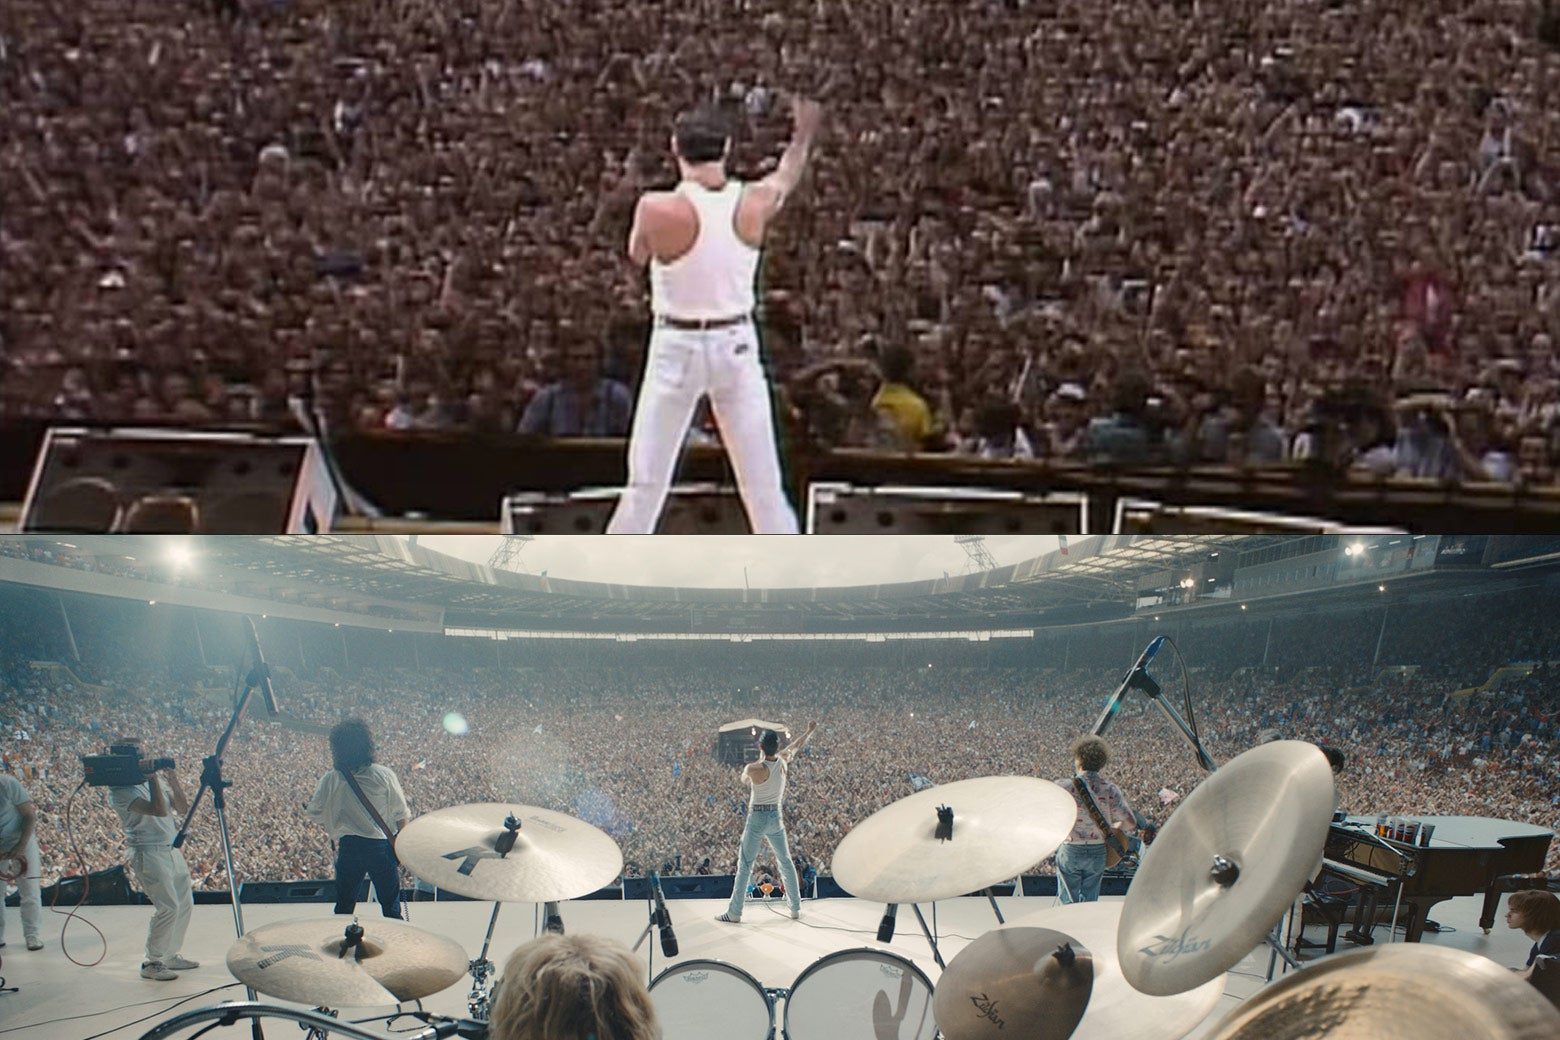 The band performs at Live Aid, in real life and in the movie.